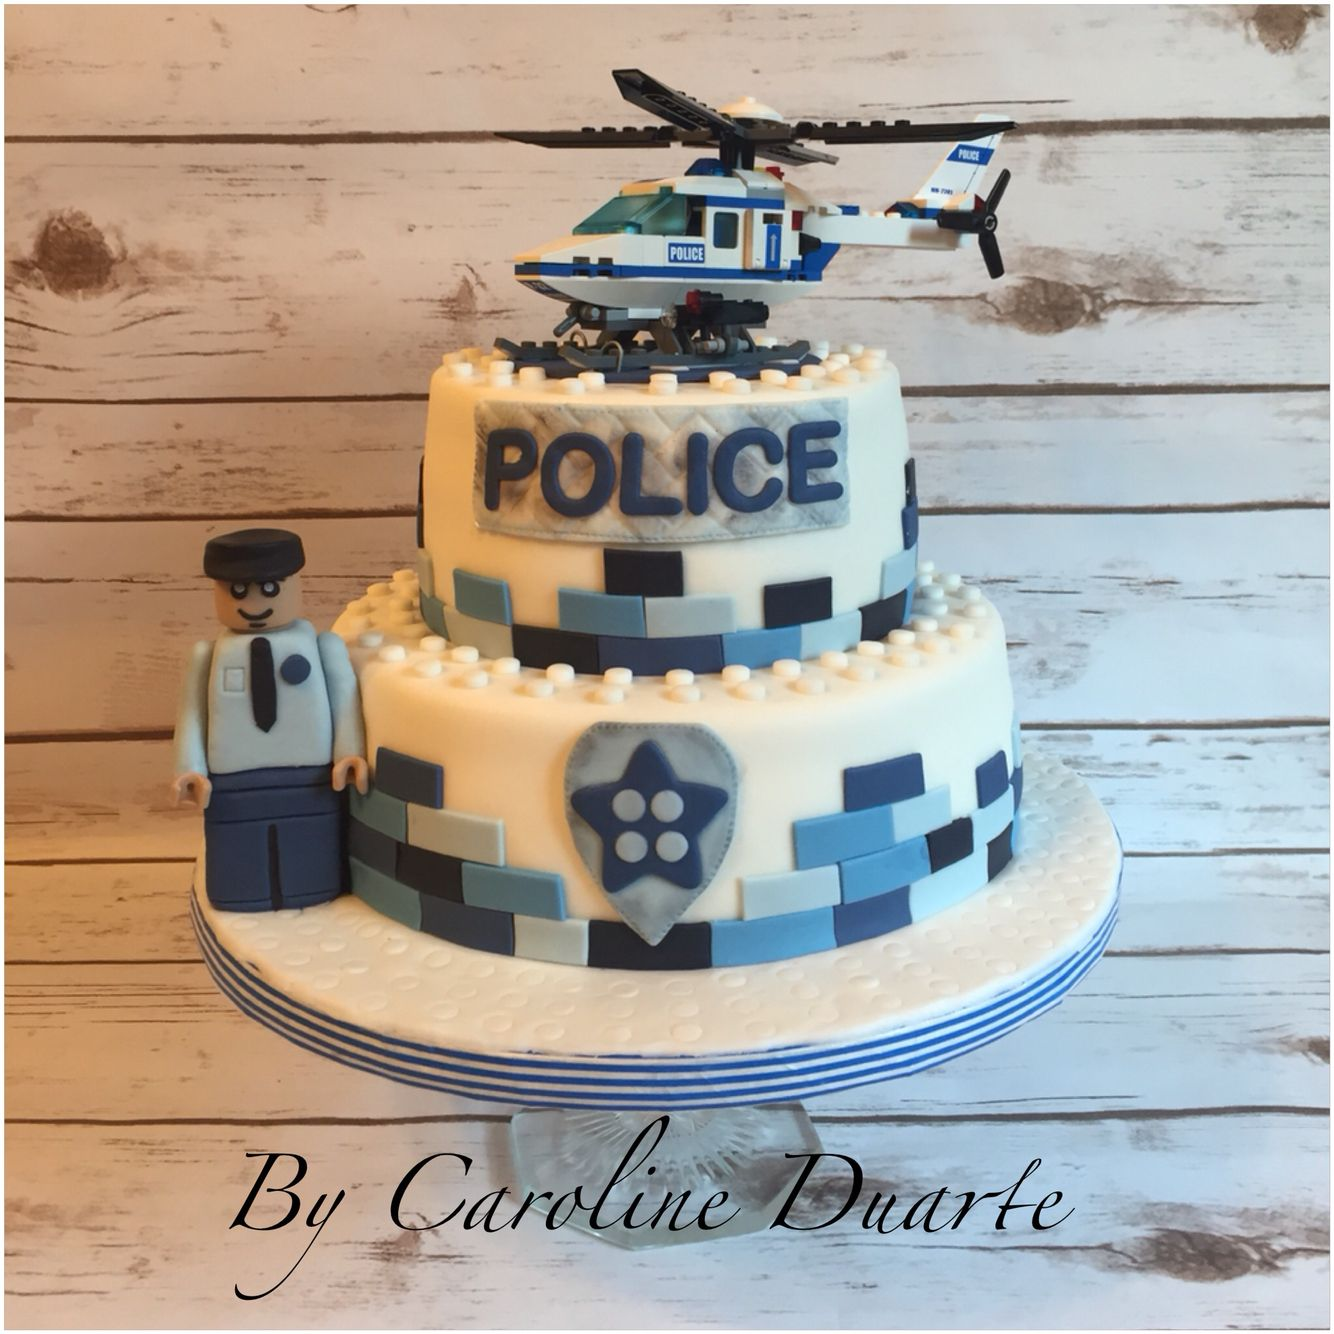 Lego Police Cake Cakes And Treats By Caroline Duarte Pinterest